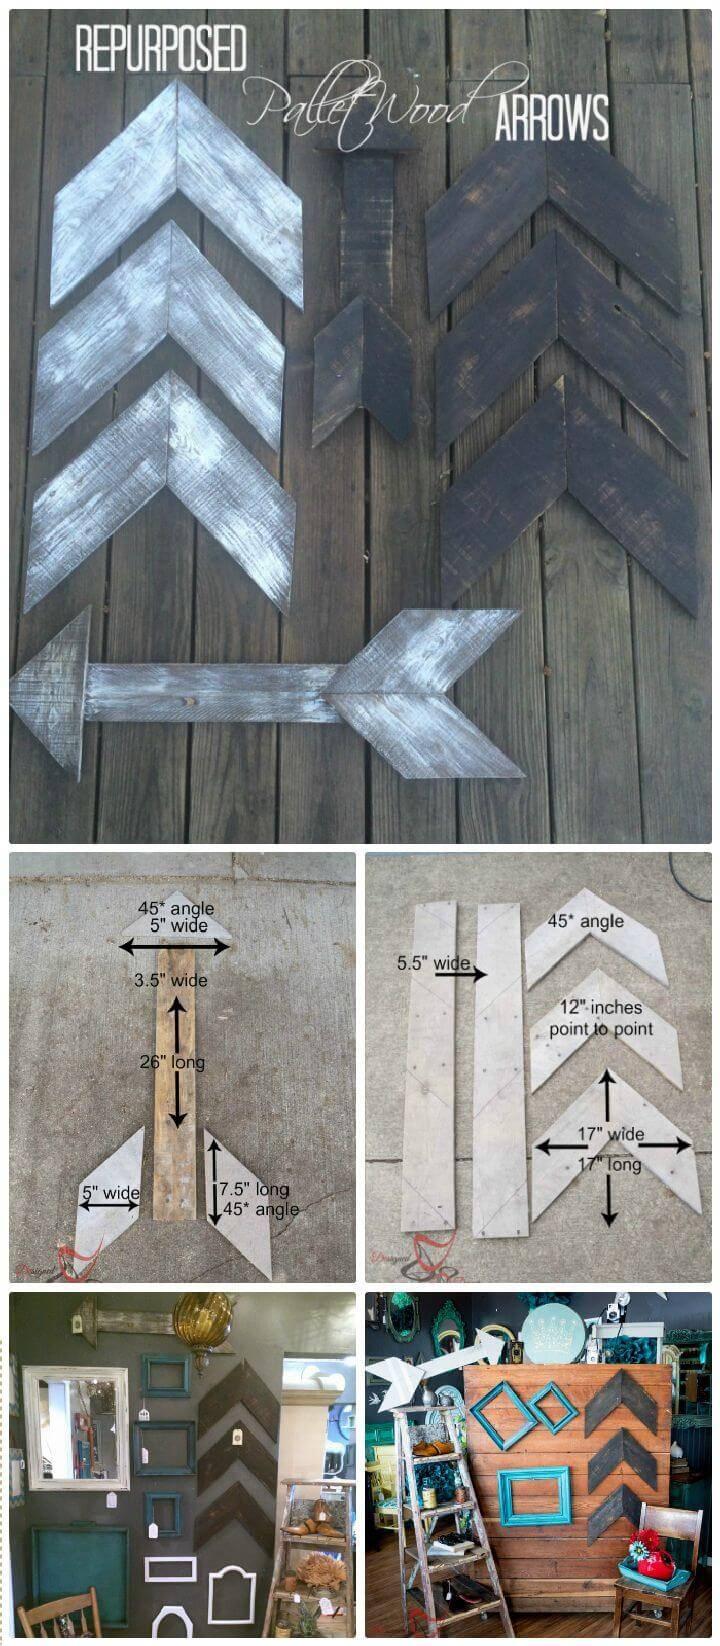 DIY Repurposed Pallet Wood Projects!